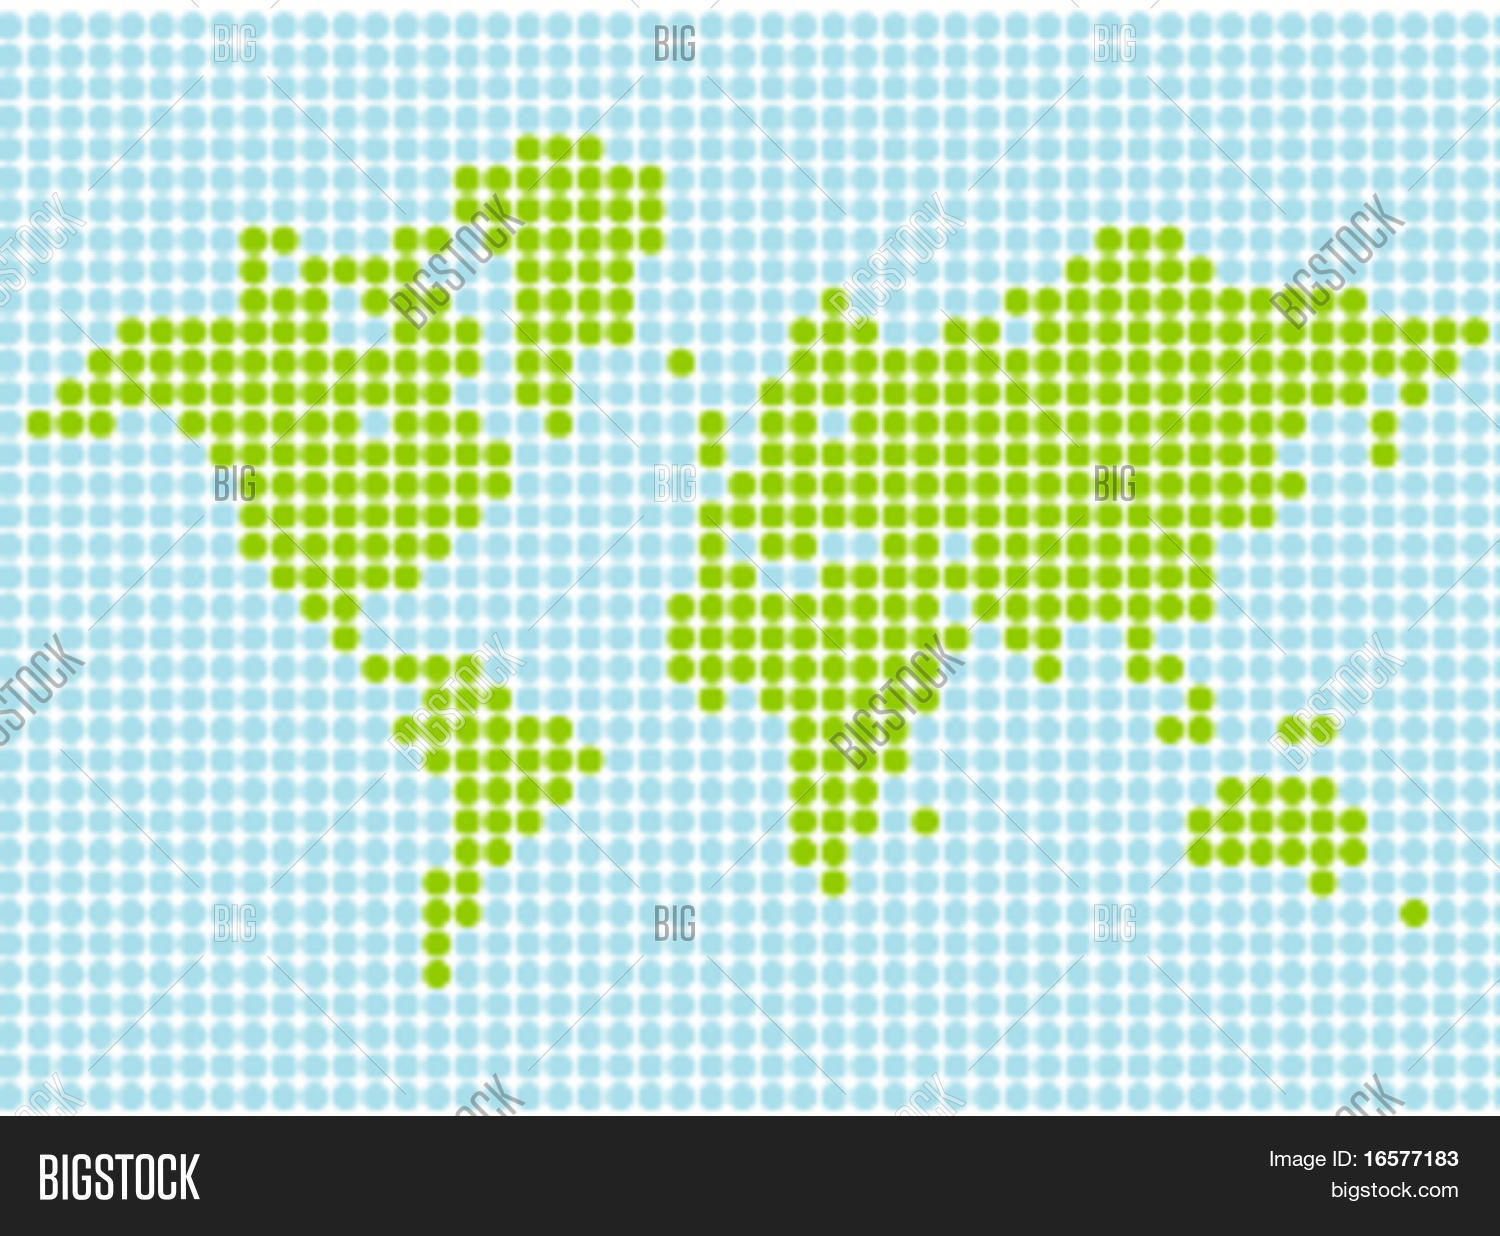 Stylized world map vector format vector photo bigstock stylized world map in vector format scalable and can be colored at will gumiabroncs Image collections